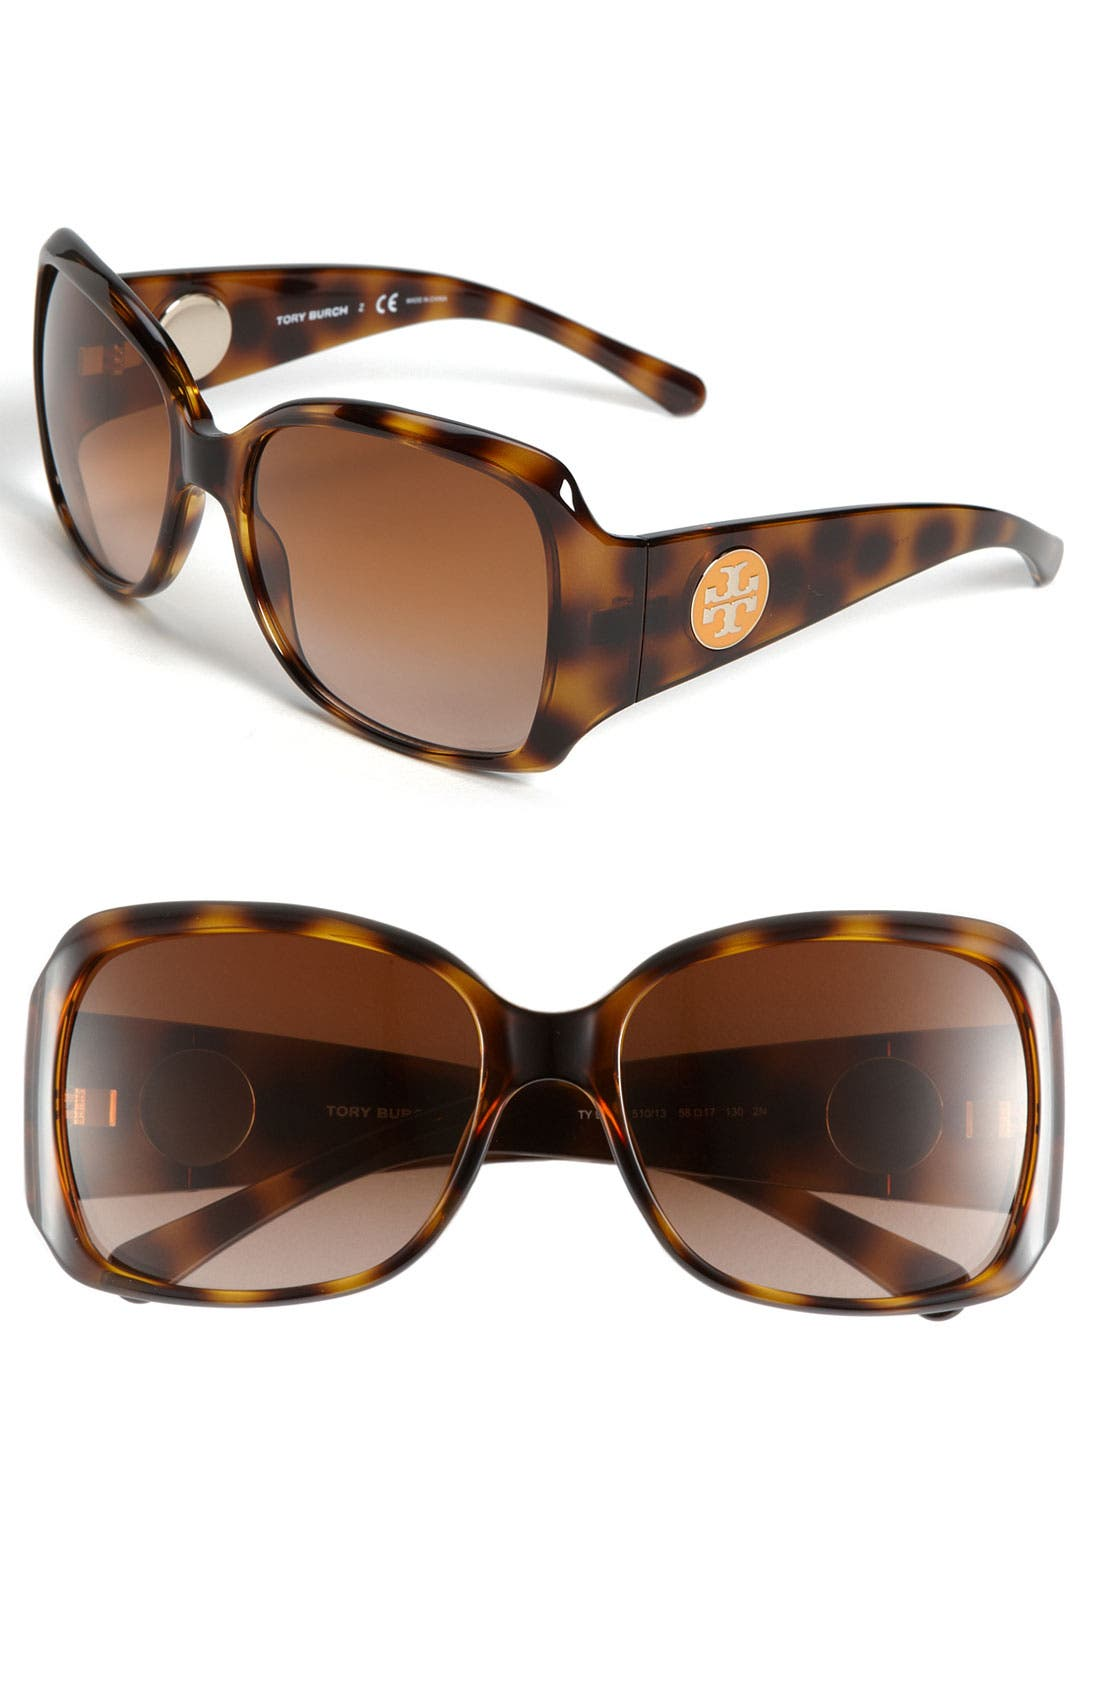 Alternate Image 1 Selected - Tory Burch 58mm Square Sunglasses (Online Only)